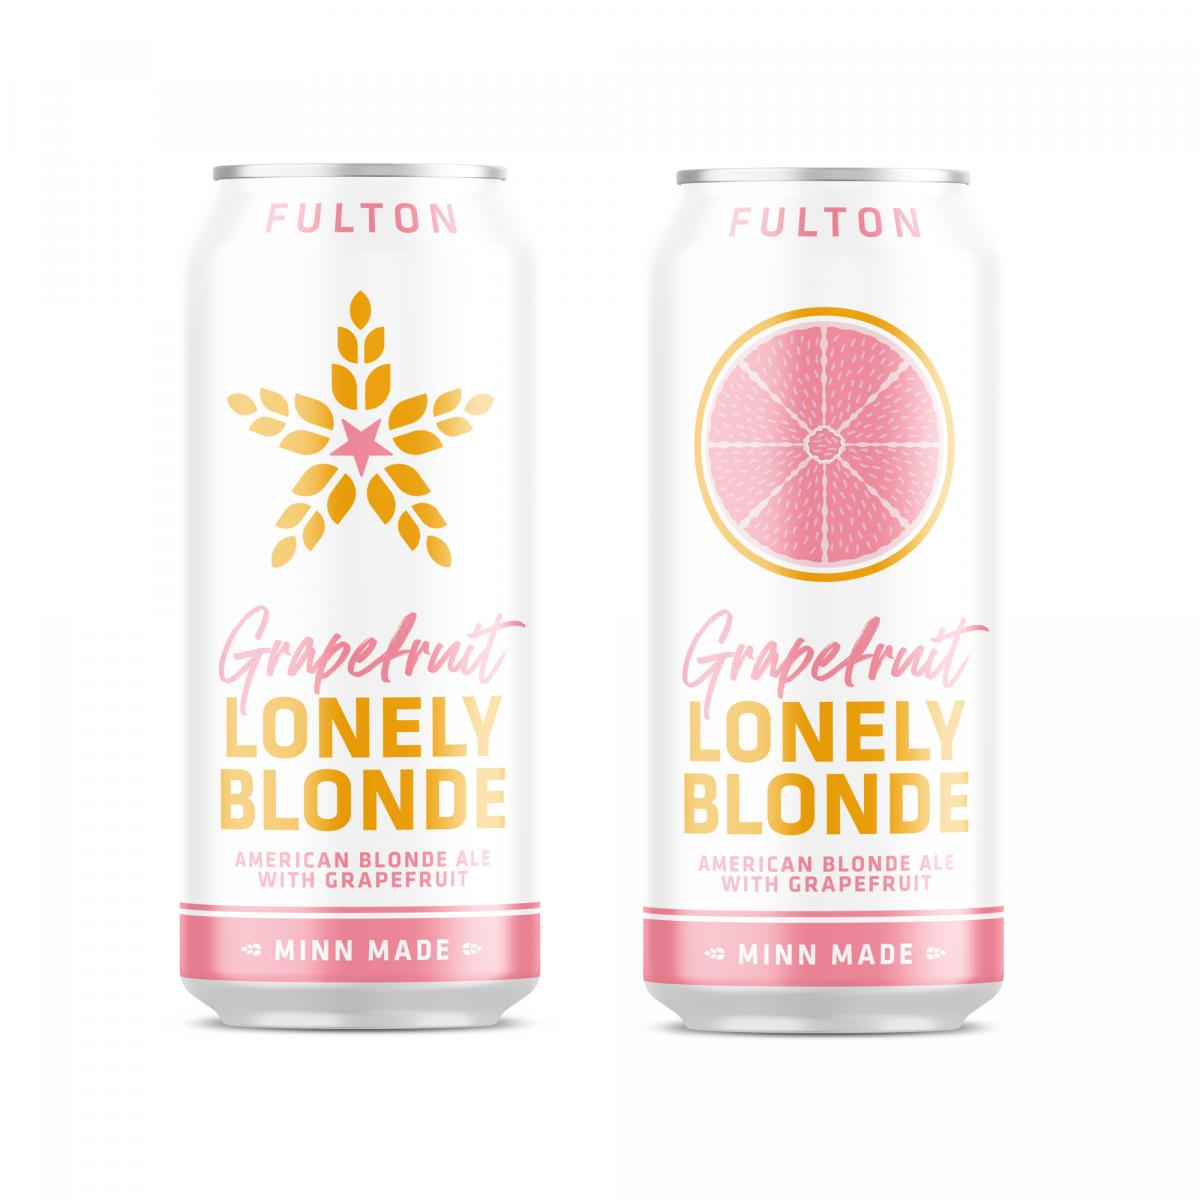 Grapefruit Lonely Blonde